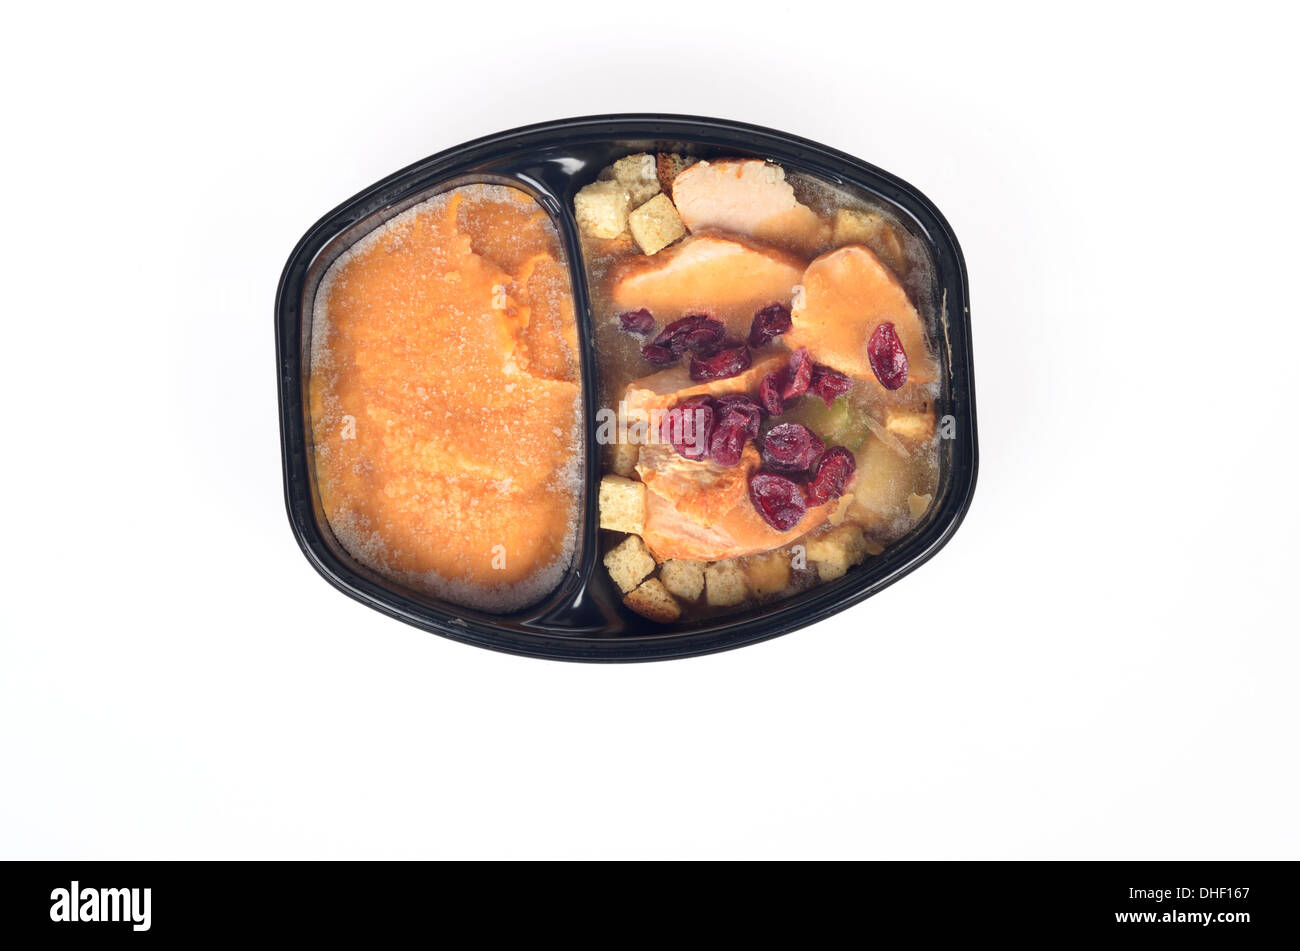 Frozen tray of turkey, stuffing and cranberries with butternut squash - Stock Image